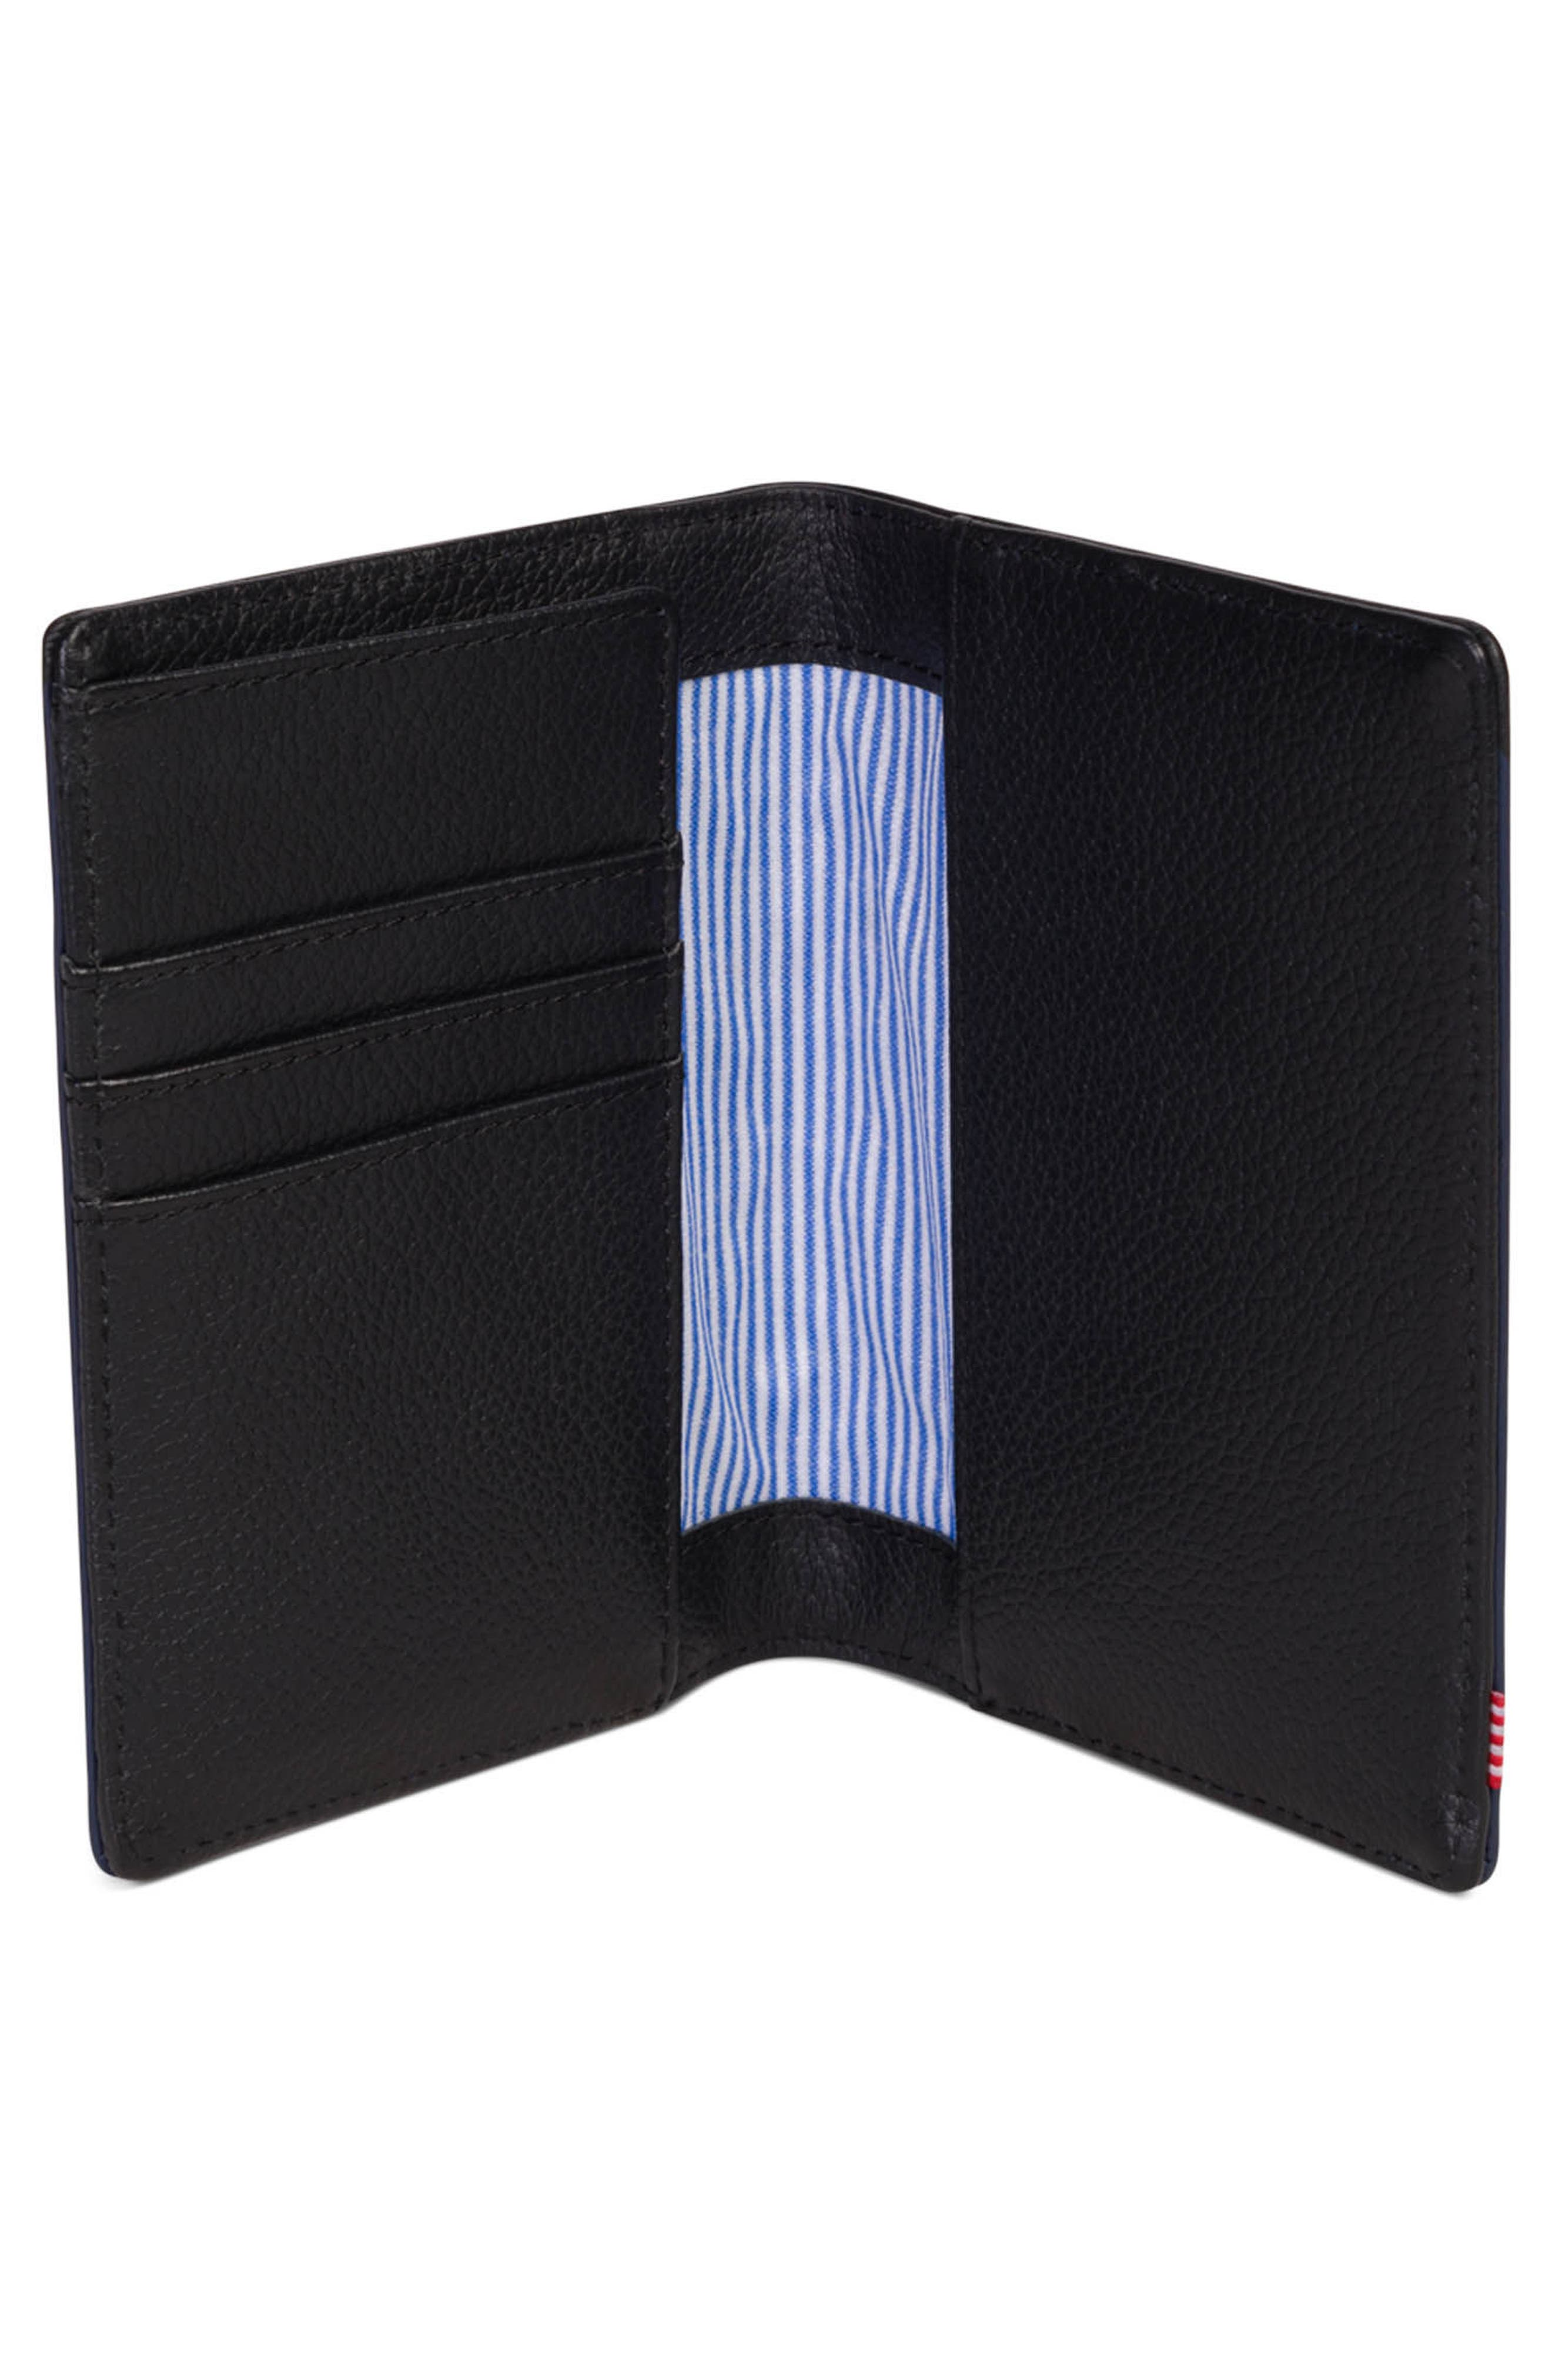 Raynor Offset Leather Wallet,                             Alternate thumbnail 2, color,                             Black